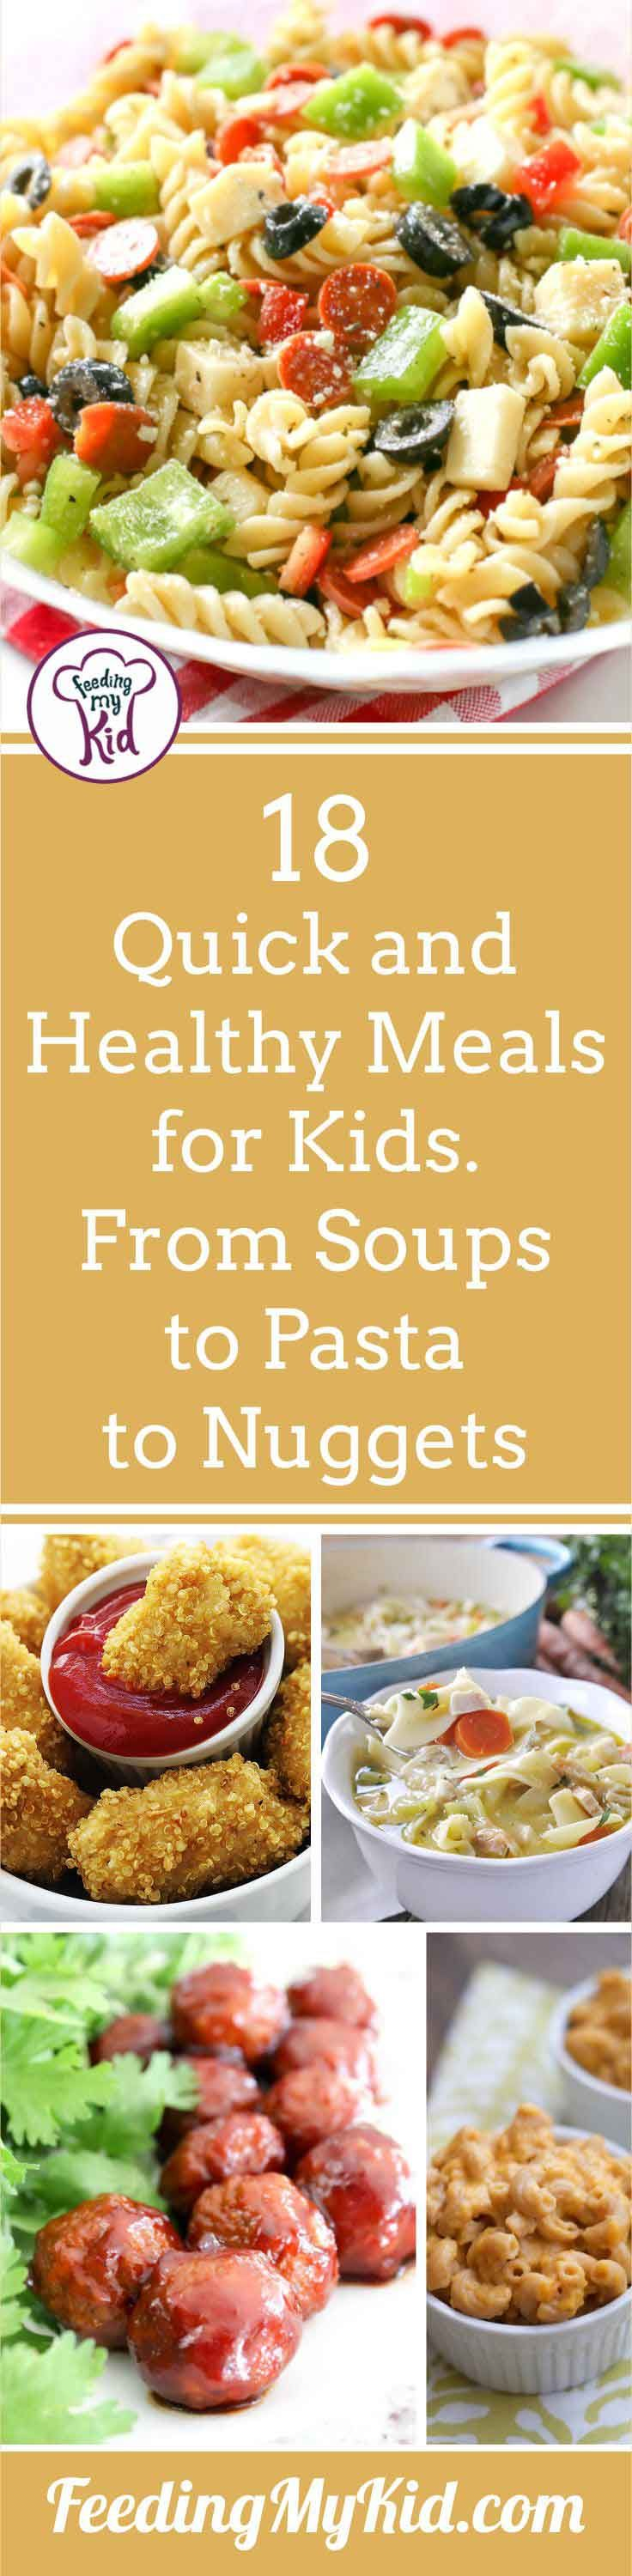 Knowing what you're gonna make for your kid's next meal is a lifesaver. Check out these healthy meals for kids you can make quickly and feel good about!